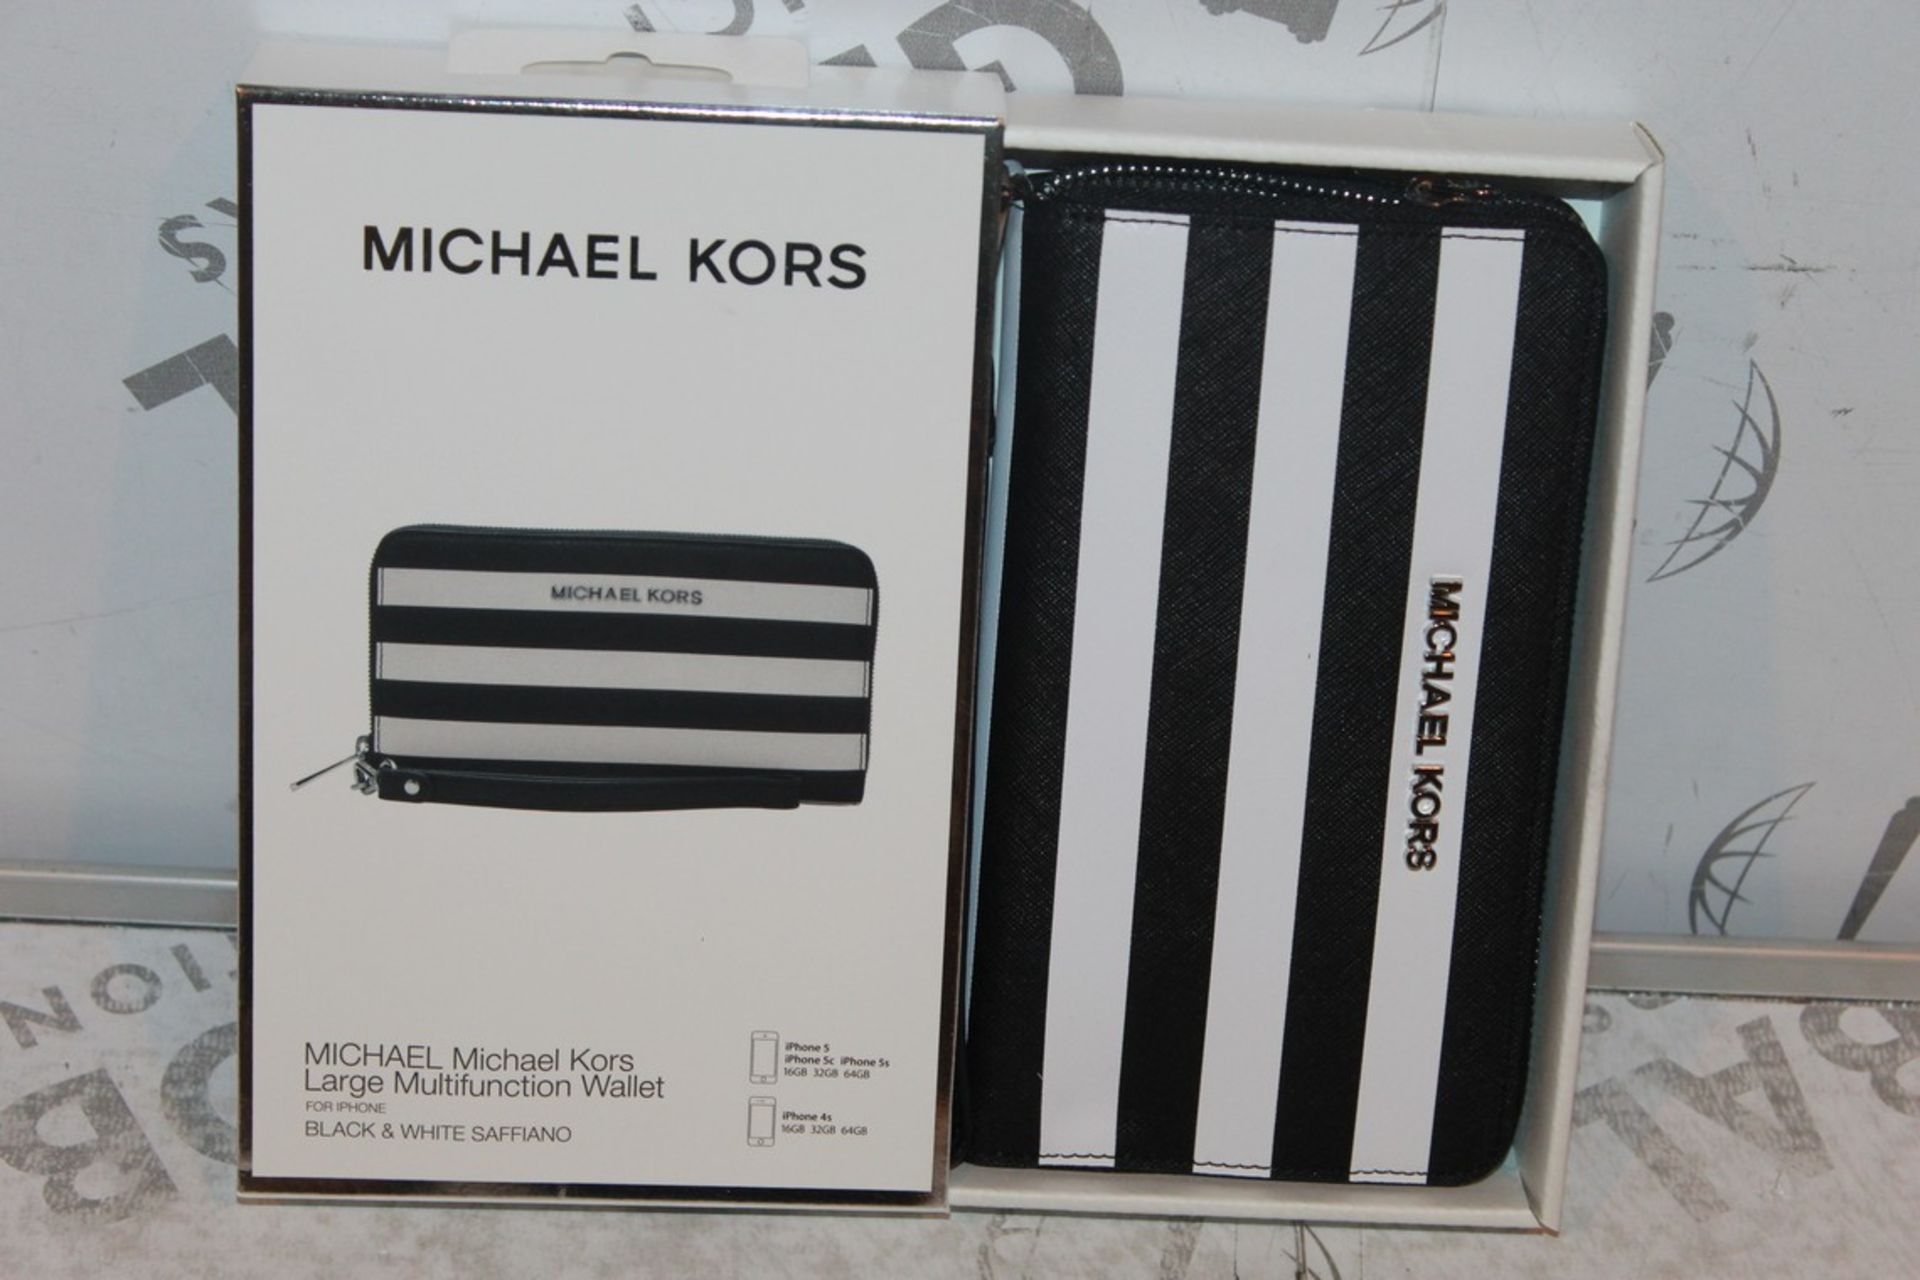 Lot 44 - Boxed Brand-New Michael Kors, Large Multifunction, Black and White Saffiano, Wallet, RRP£55.00